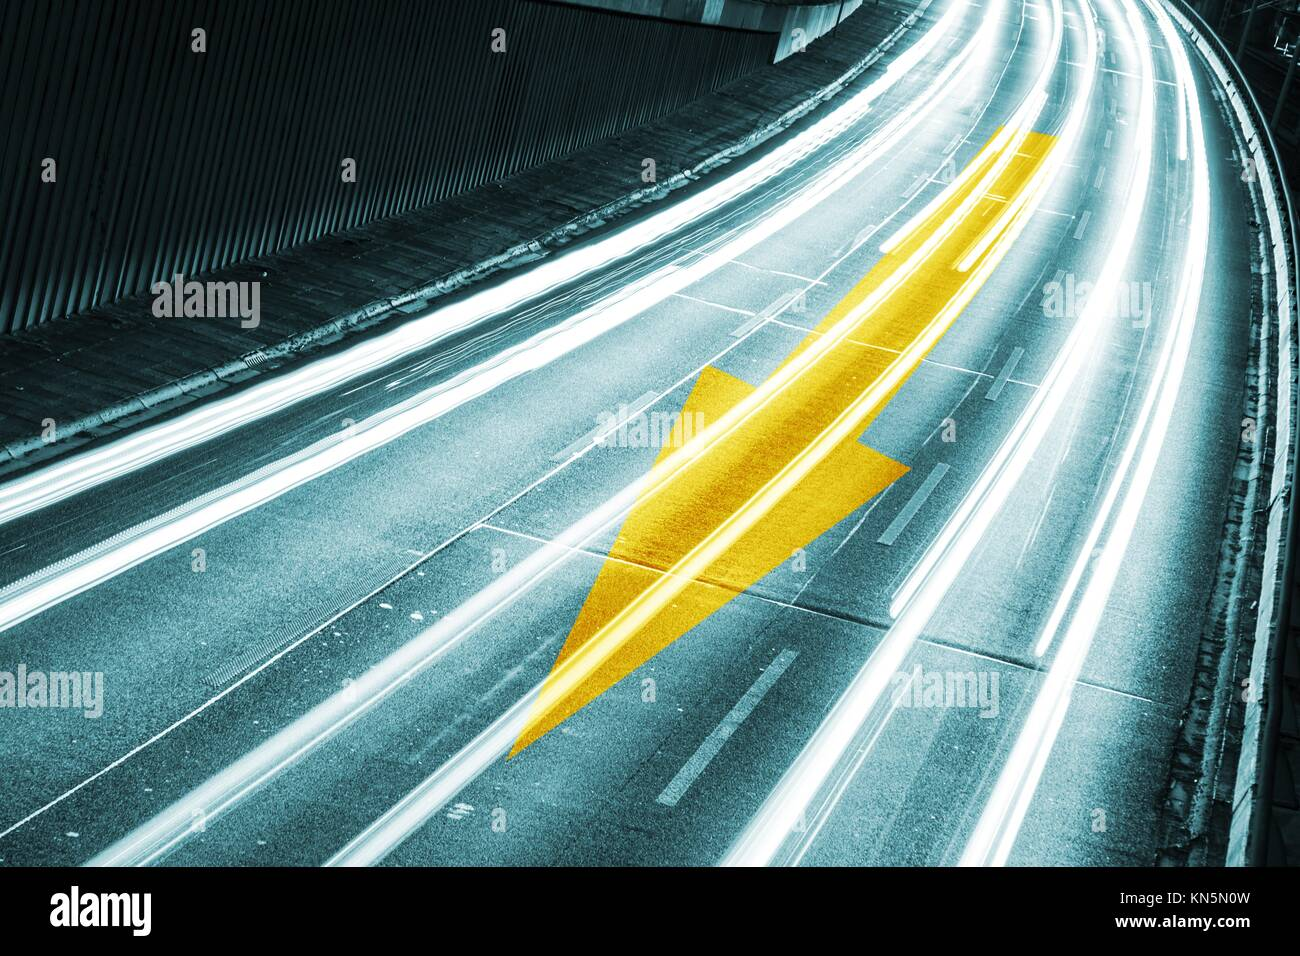 arrow on highway by night. - Stock Image